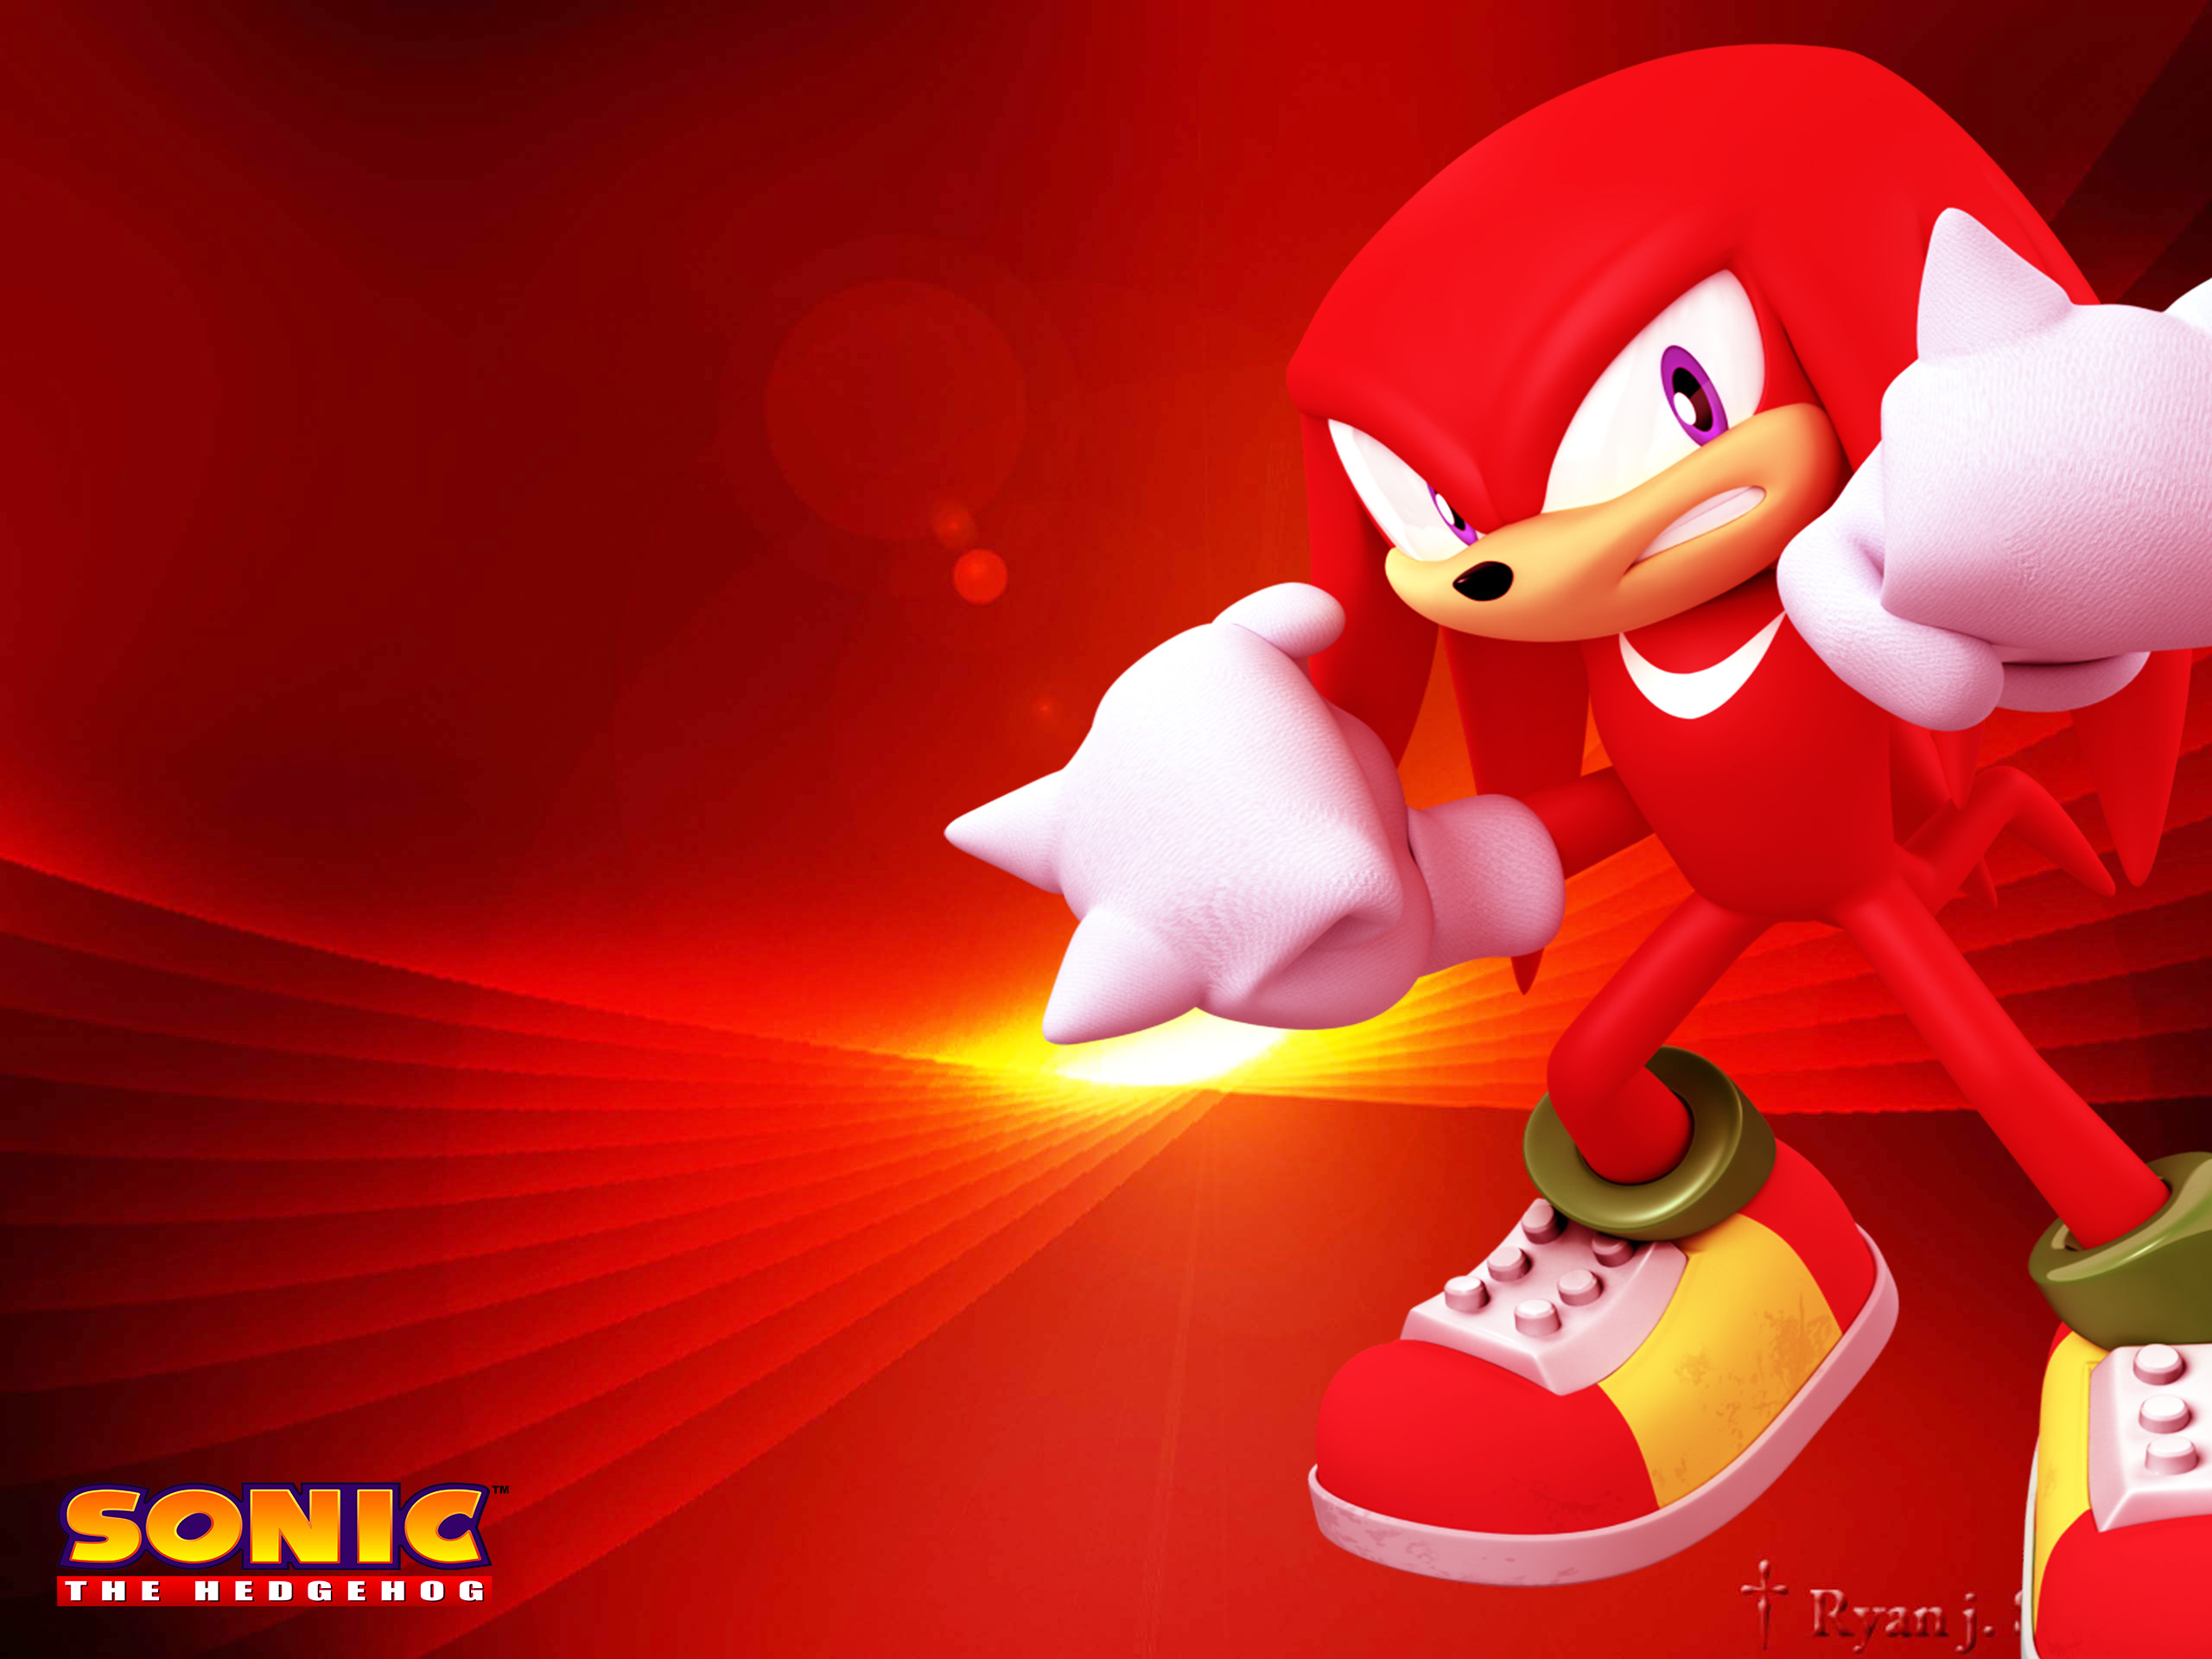 Super Mario Wallpaper Iphone 5 Mario Amp Sonic At The Olympic Games Full Hd Wallpaper And